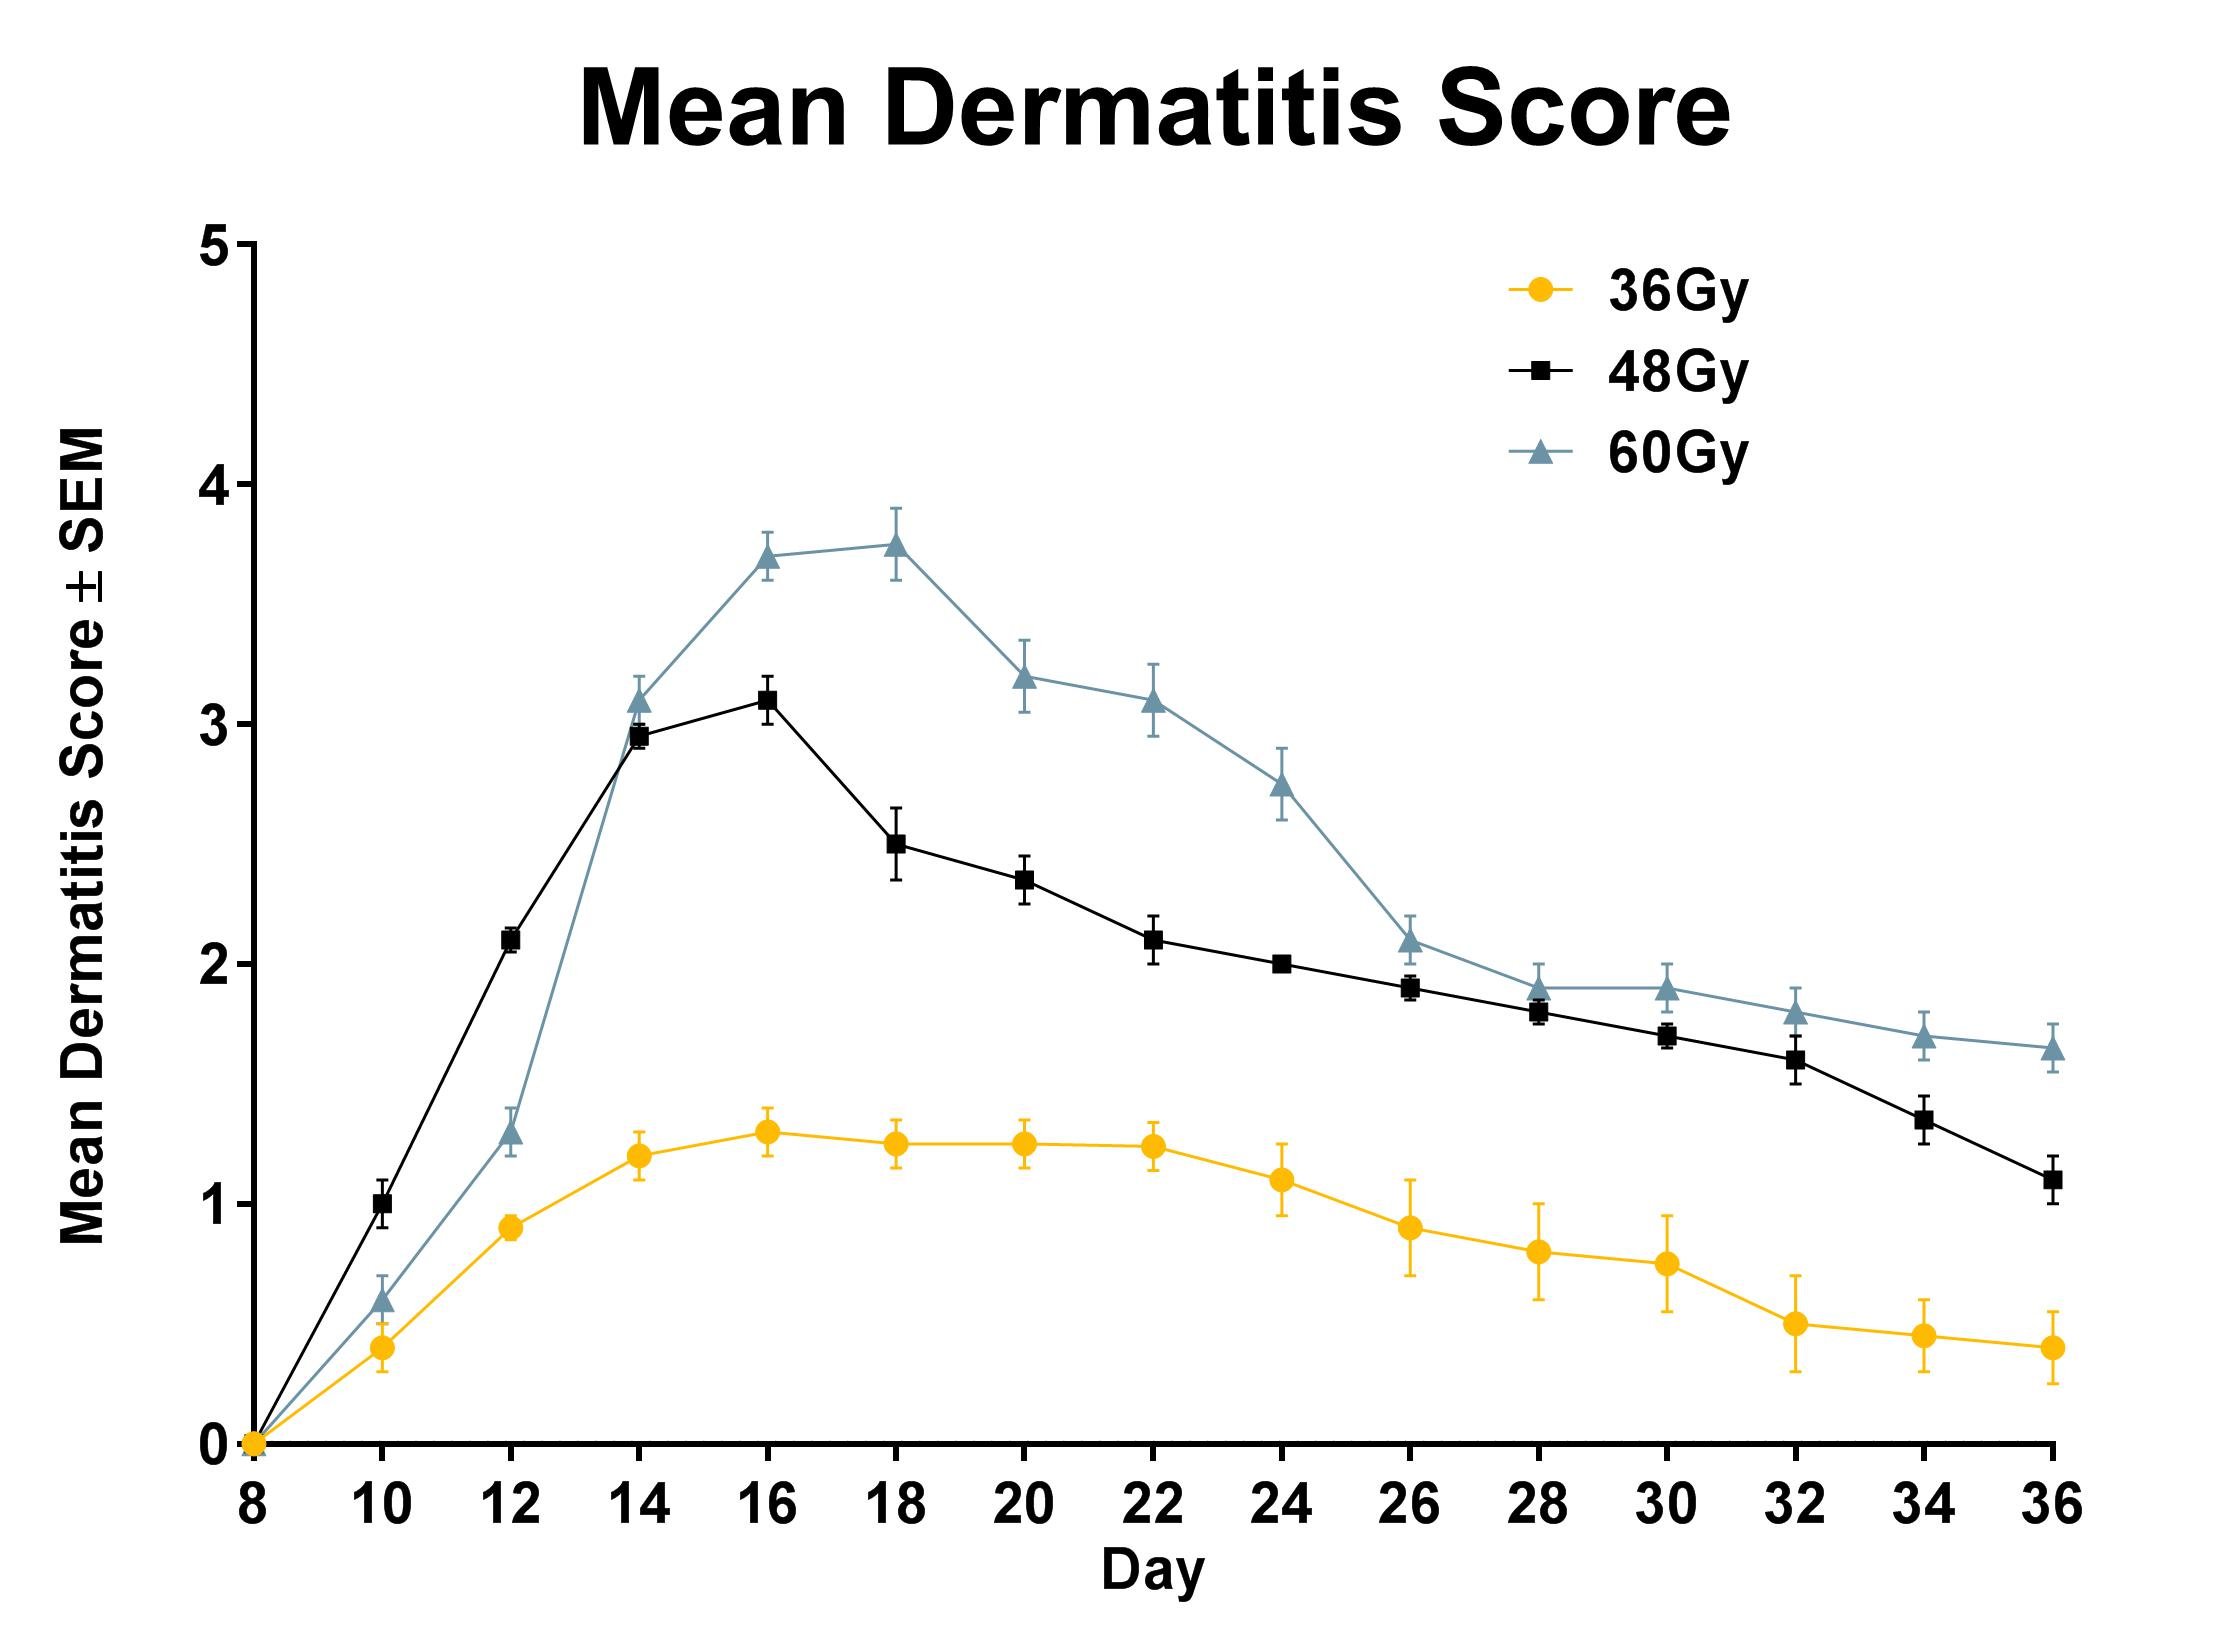 Typical Course of Dermatitis resulting from Fractionated Radiation Exposure